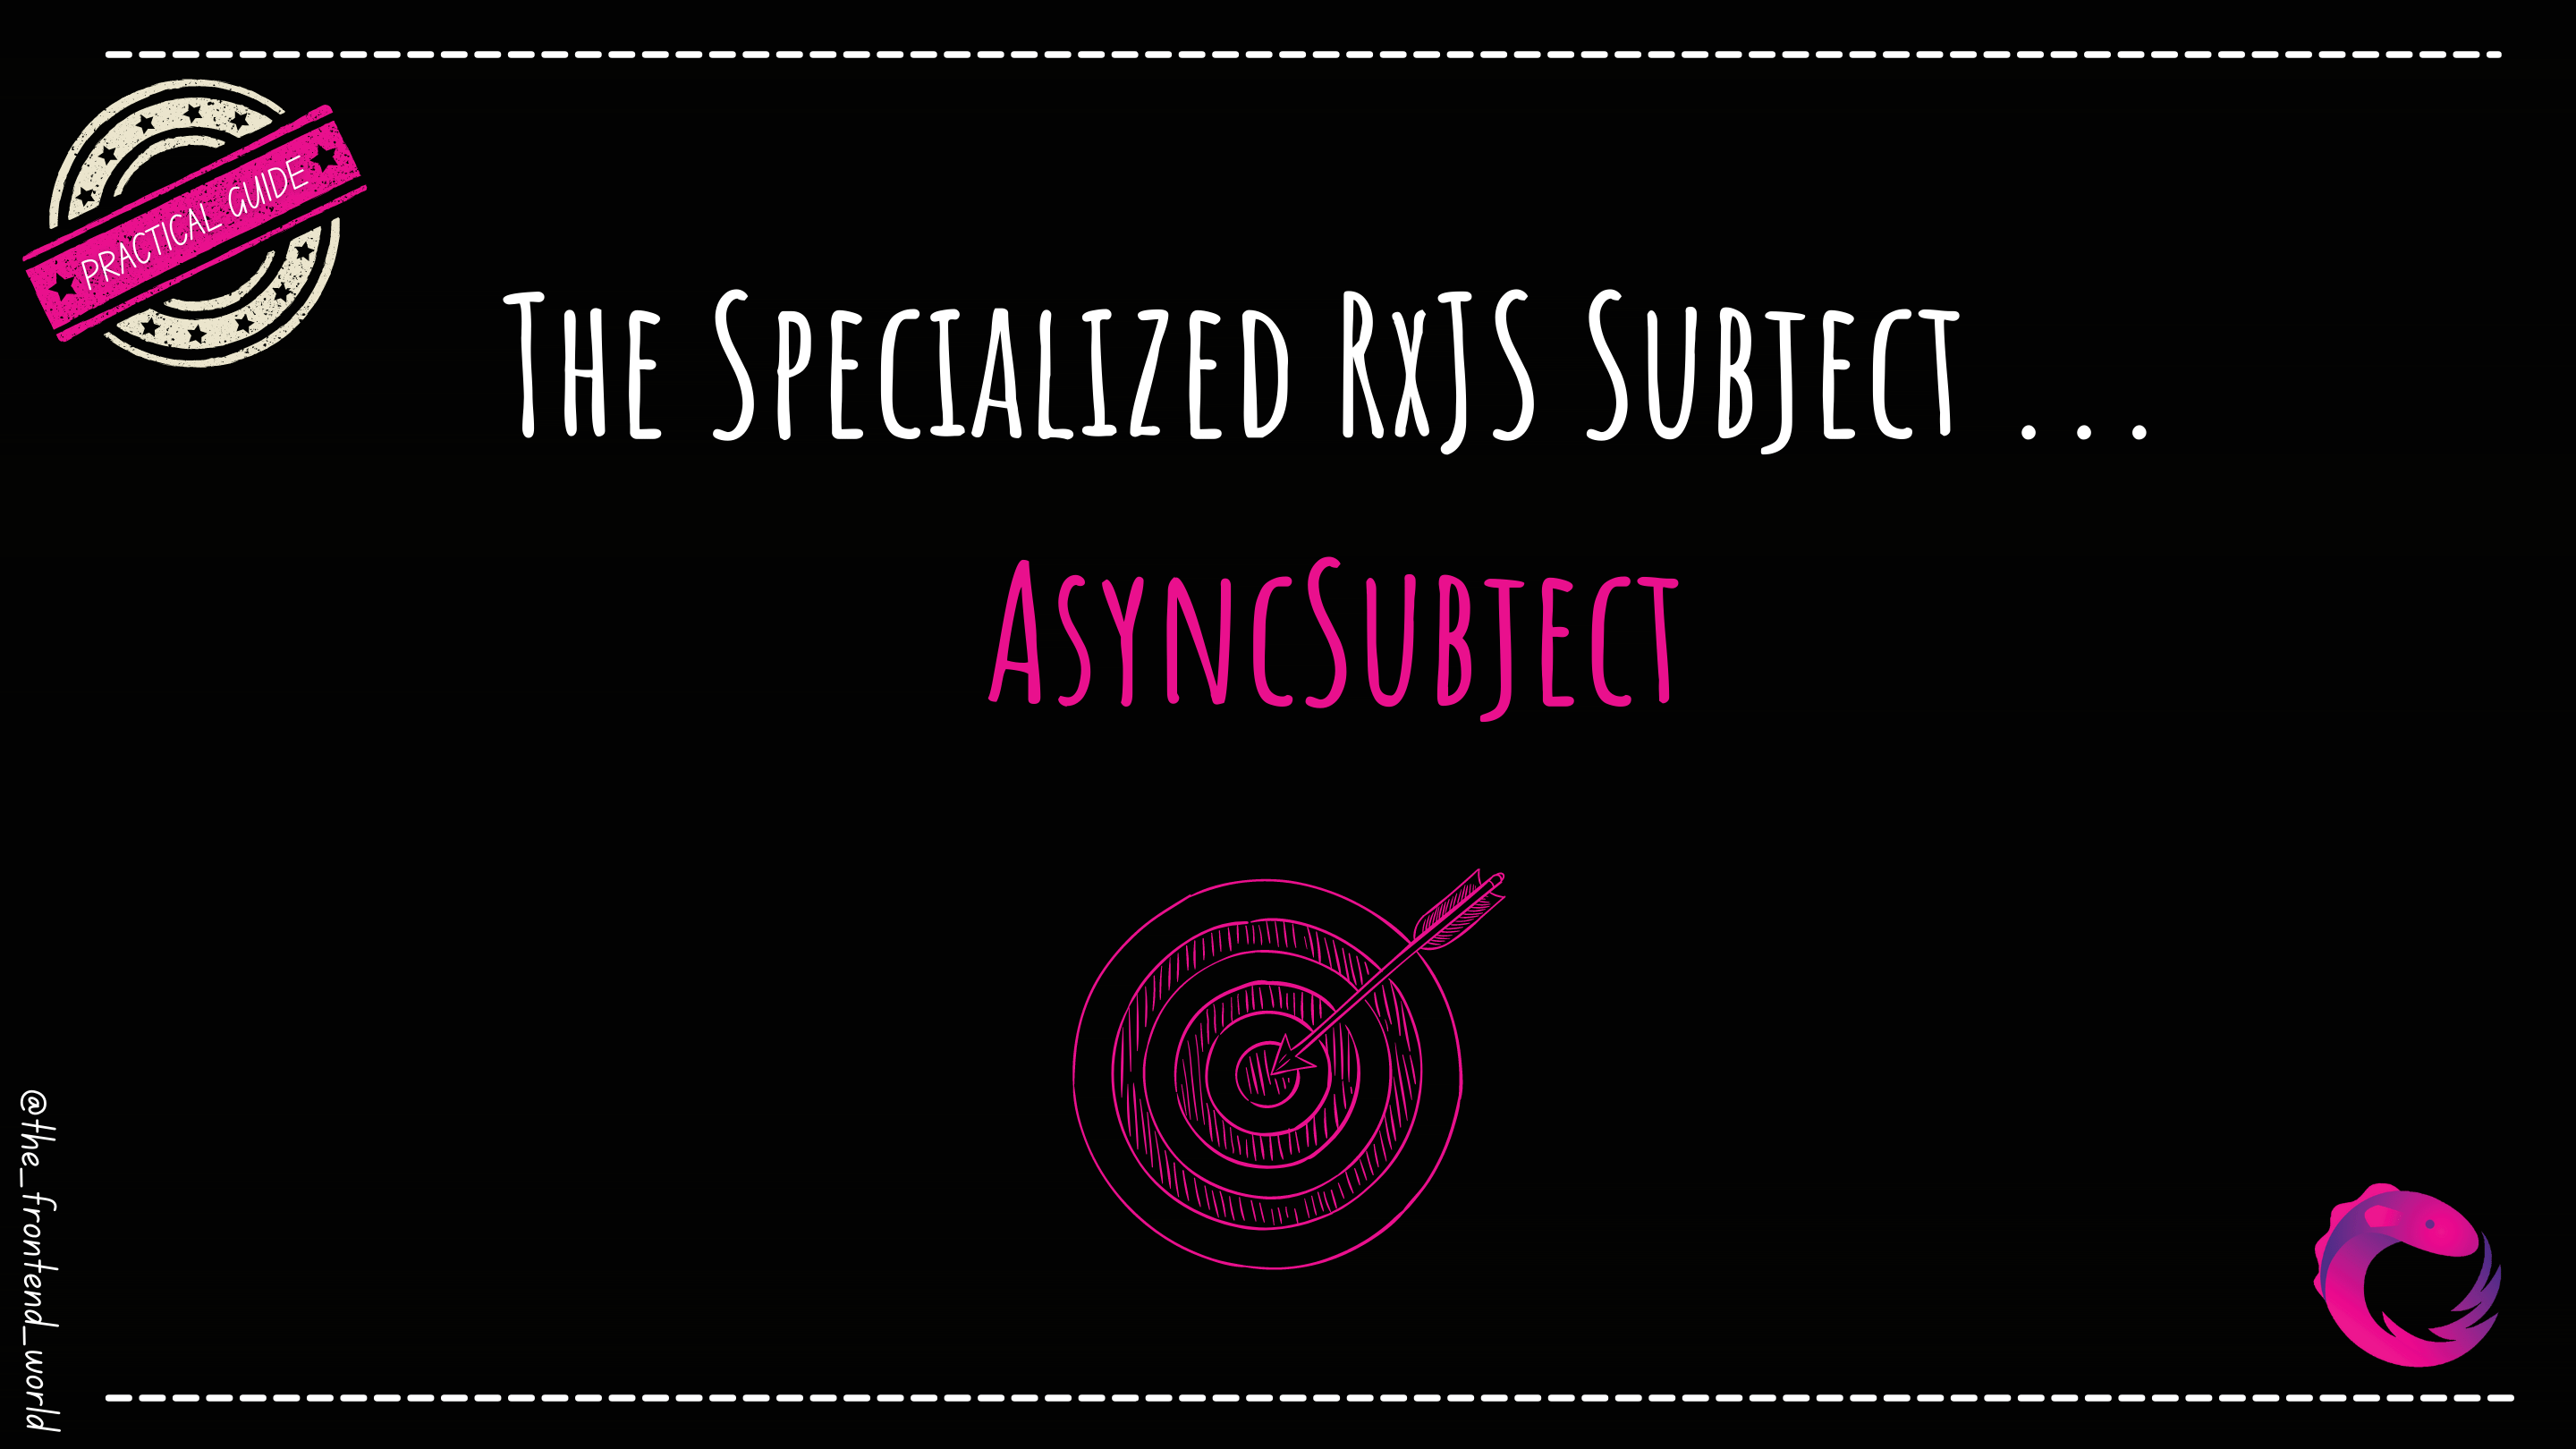 What's AsyncSubject?